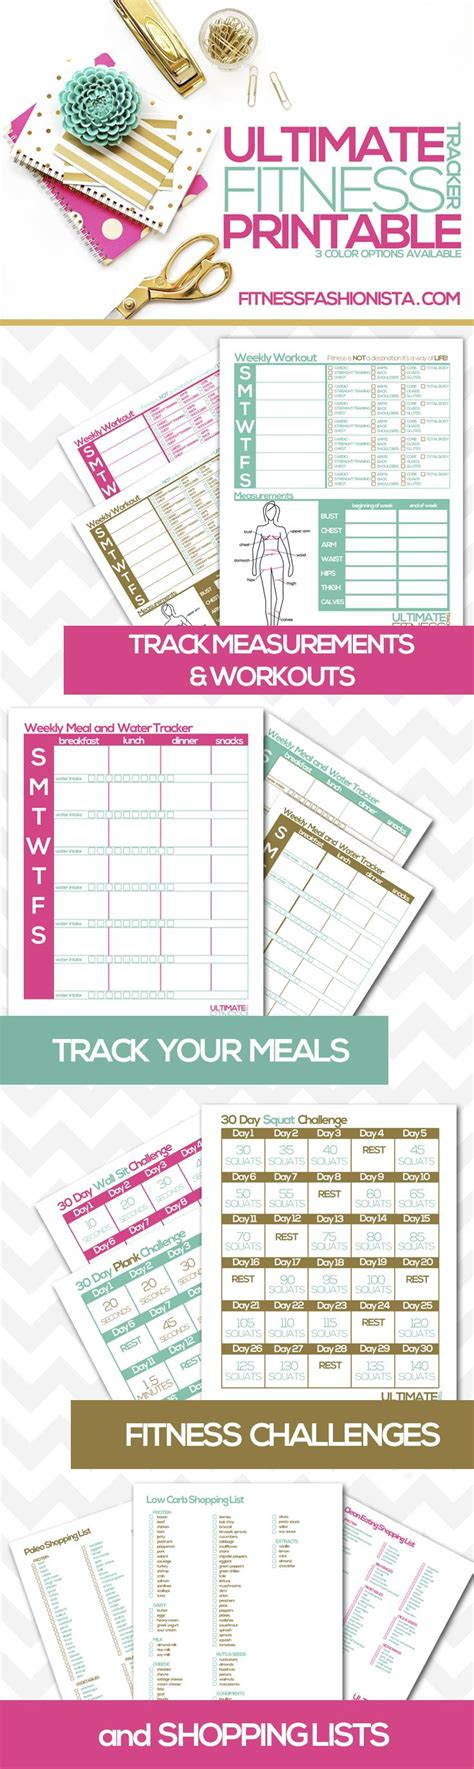 printable workout planner best 25 workout planner ideas on pinterest fitness